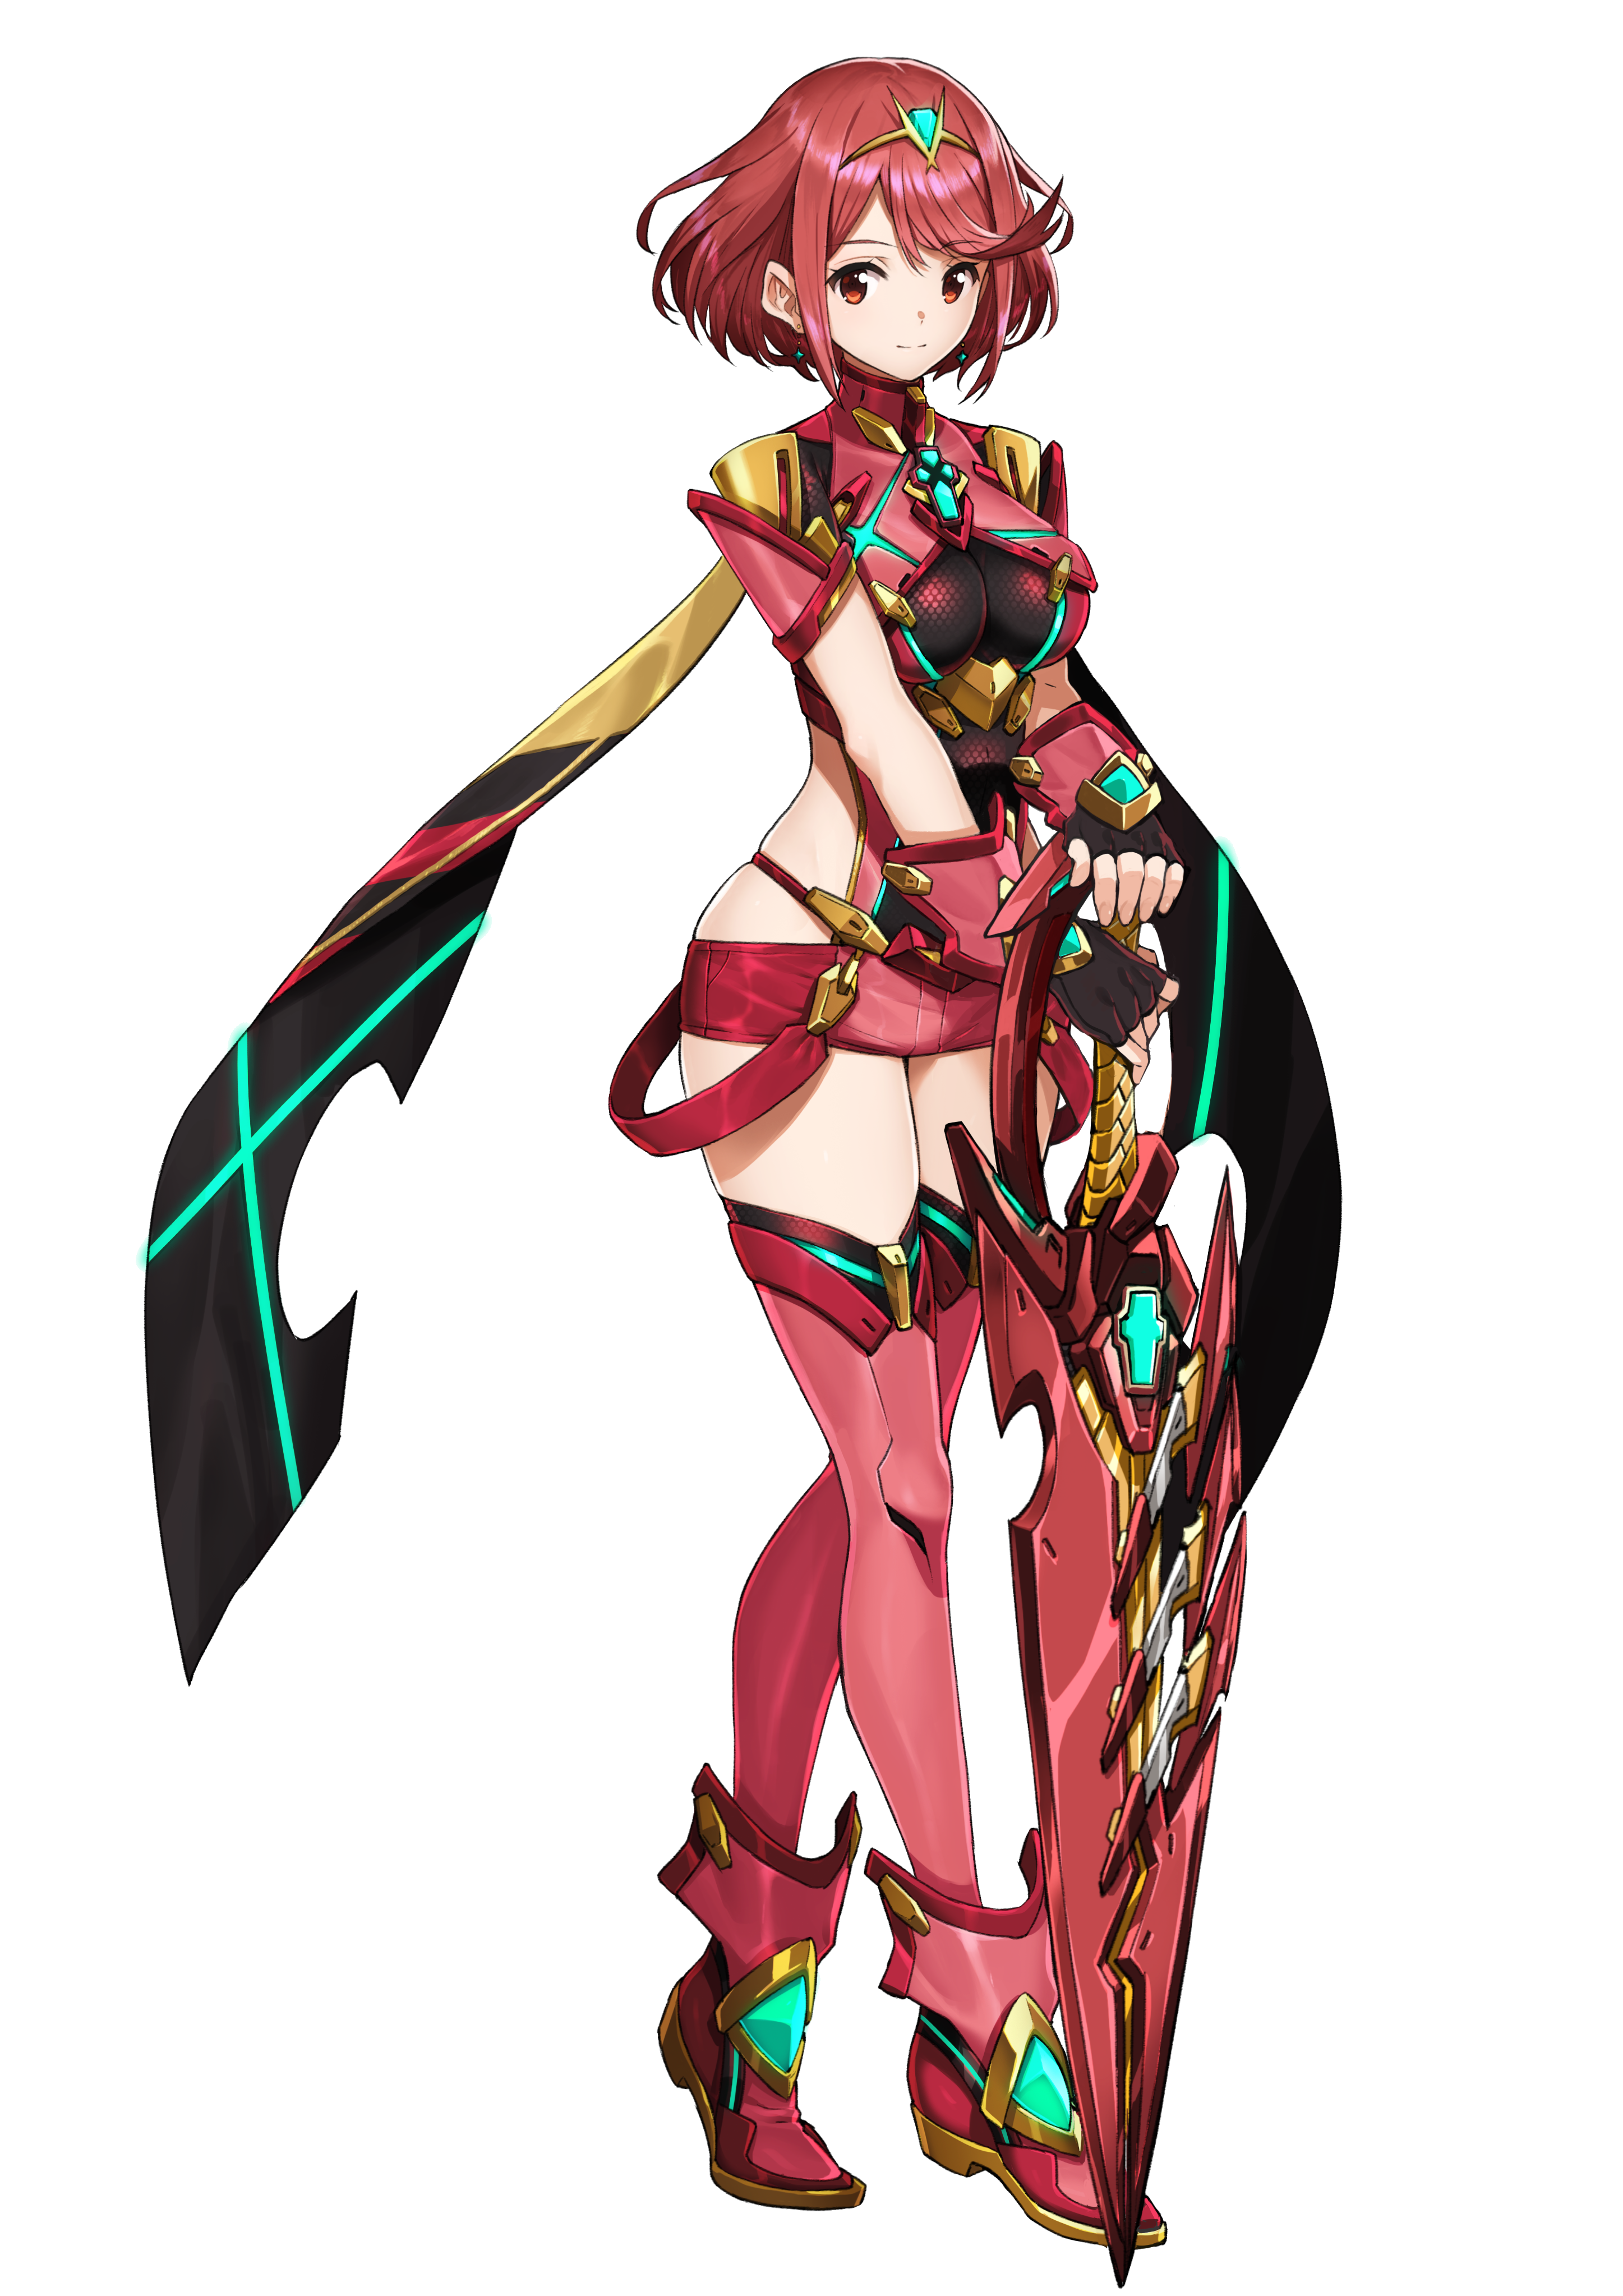 Xenoblade Chronicles 2 Transparent Png Clipart Free Download Ywd